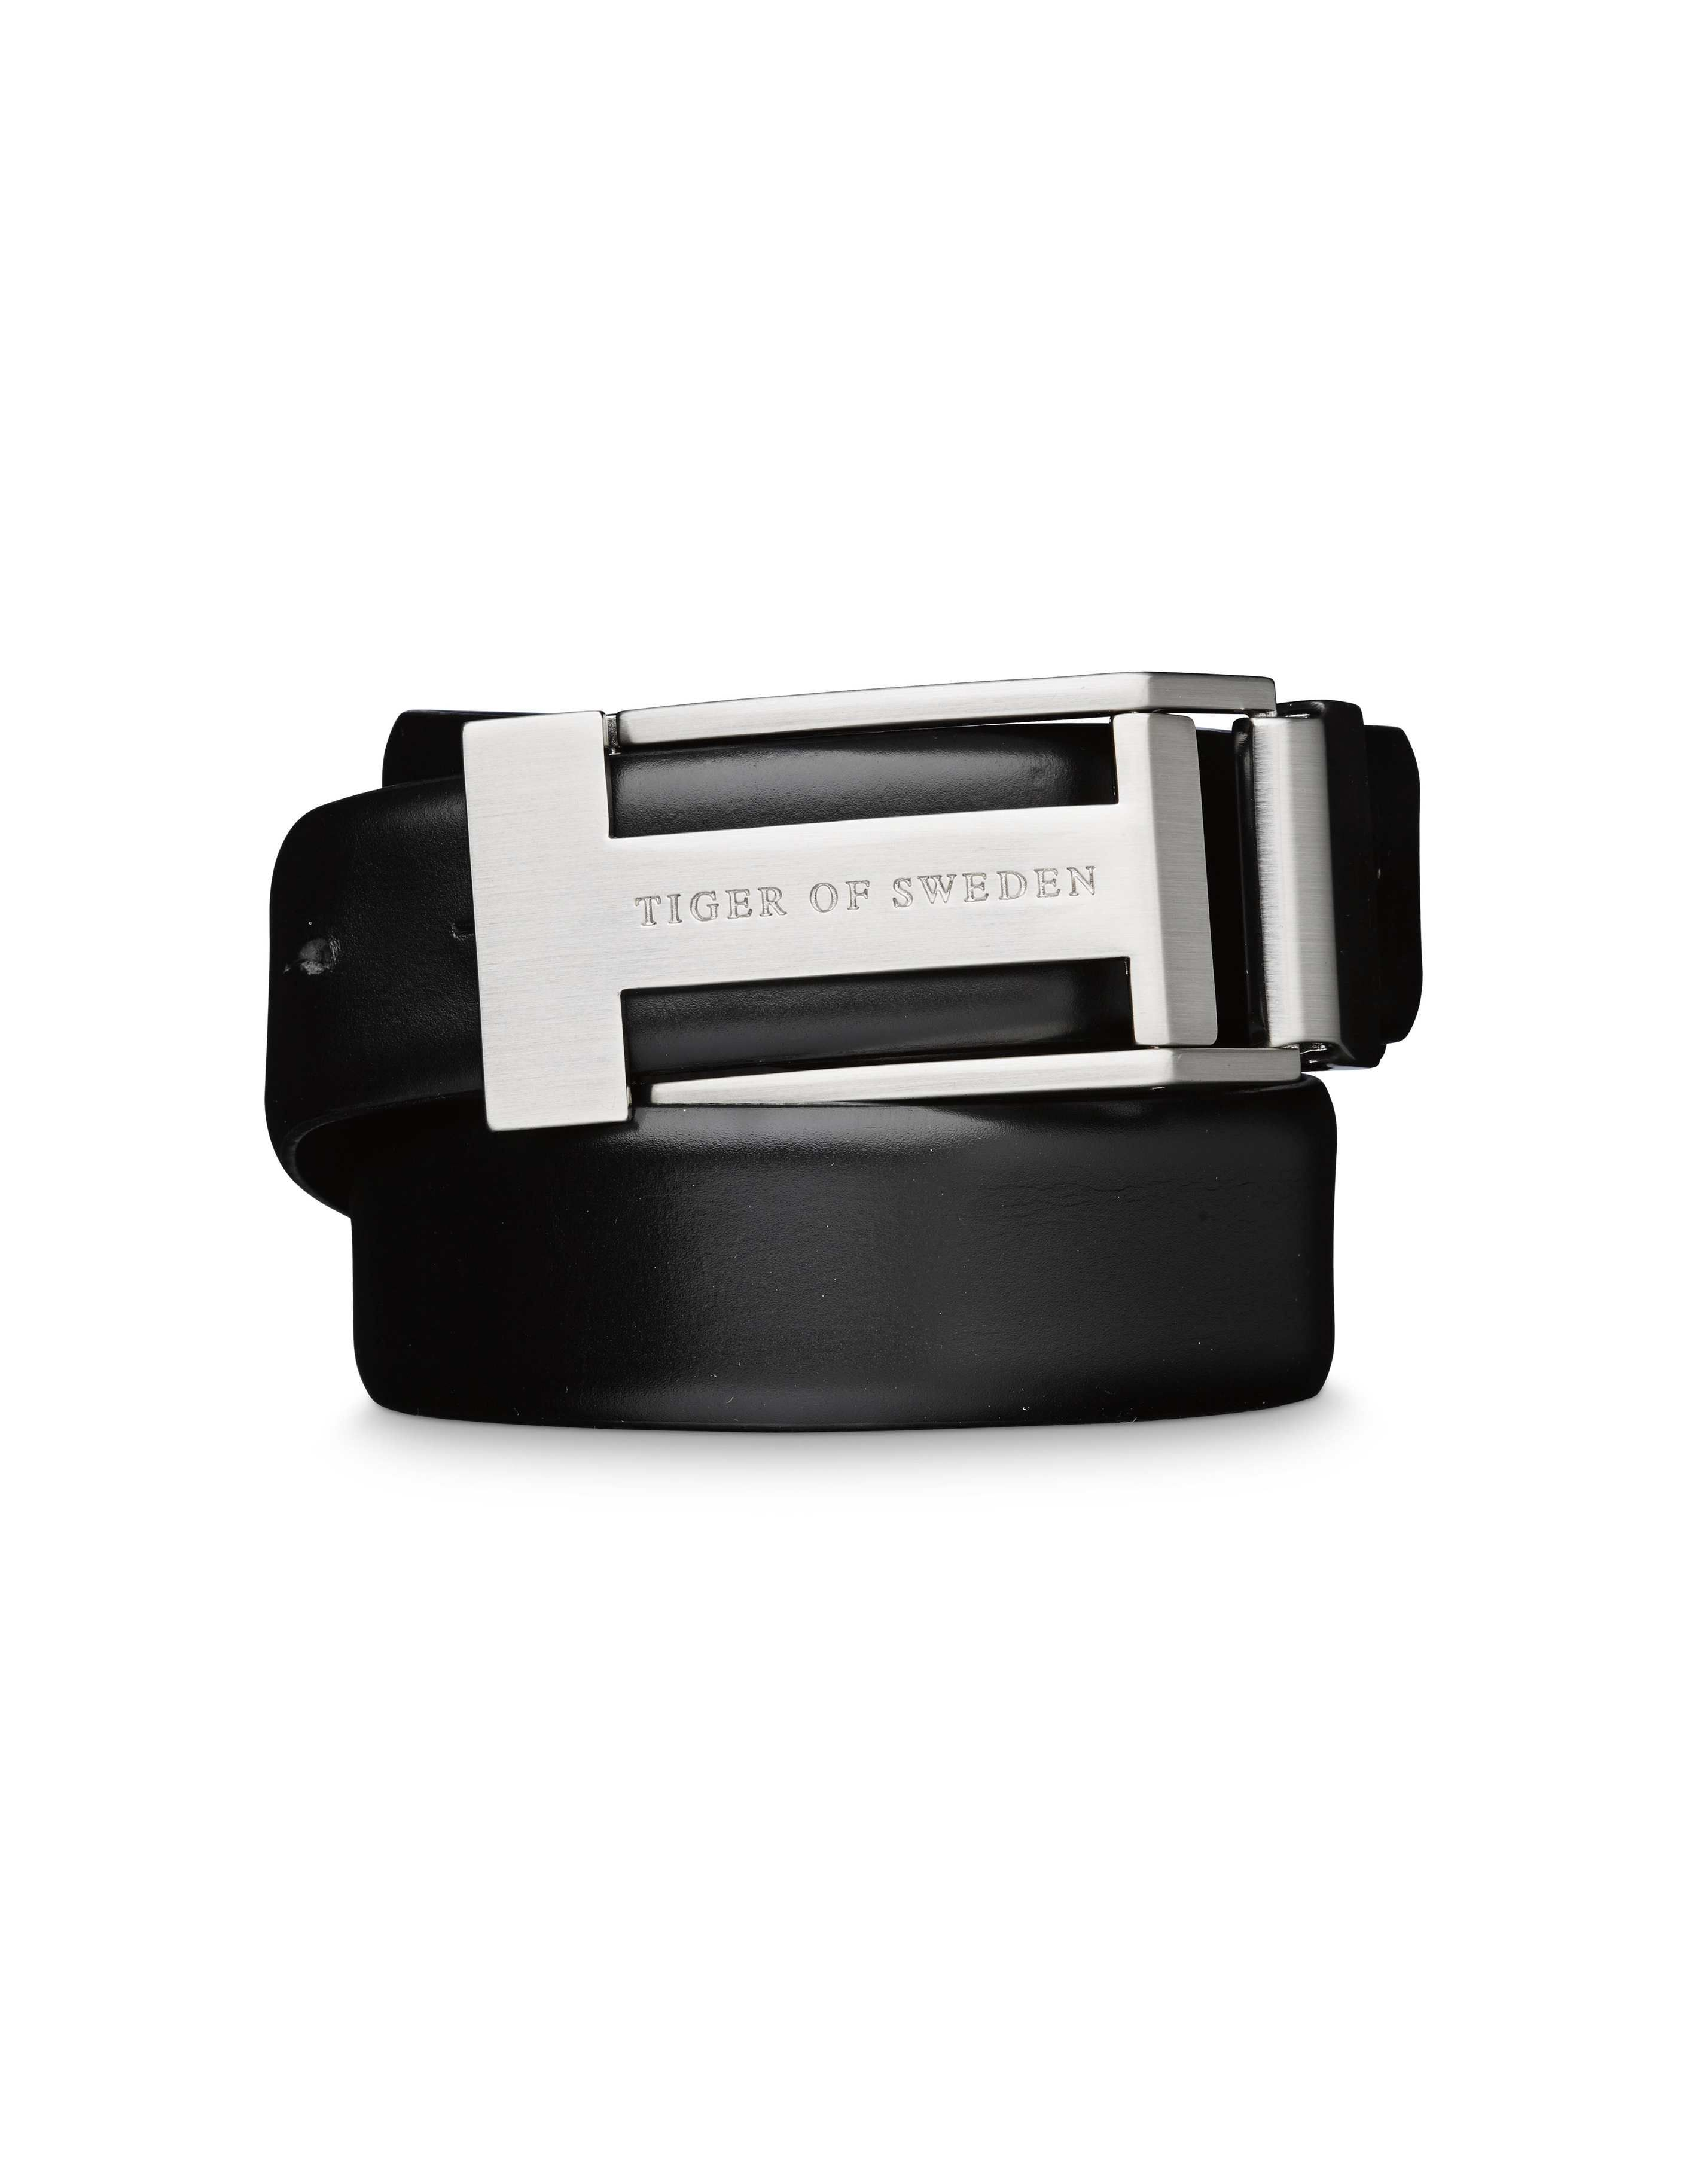 CHRISTIAN belt - Men's belt in Italian leather. Features metal buckle with brushed silver finish with Tiger of Sweden logo. Width: 3.5 cm. Made in Italy